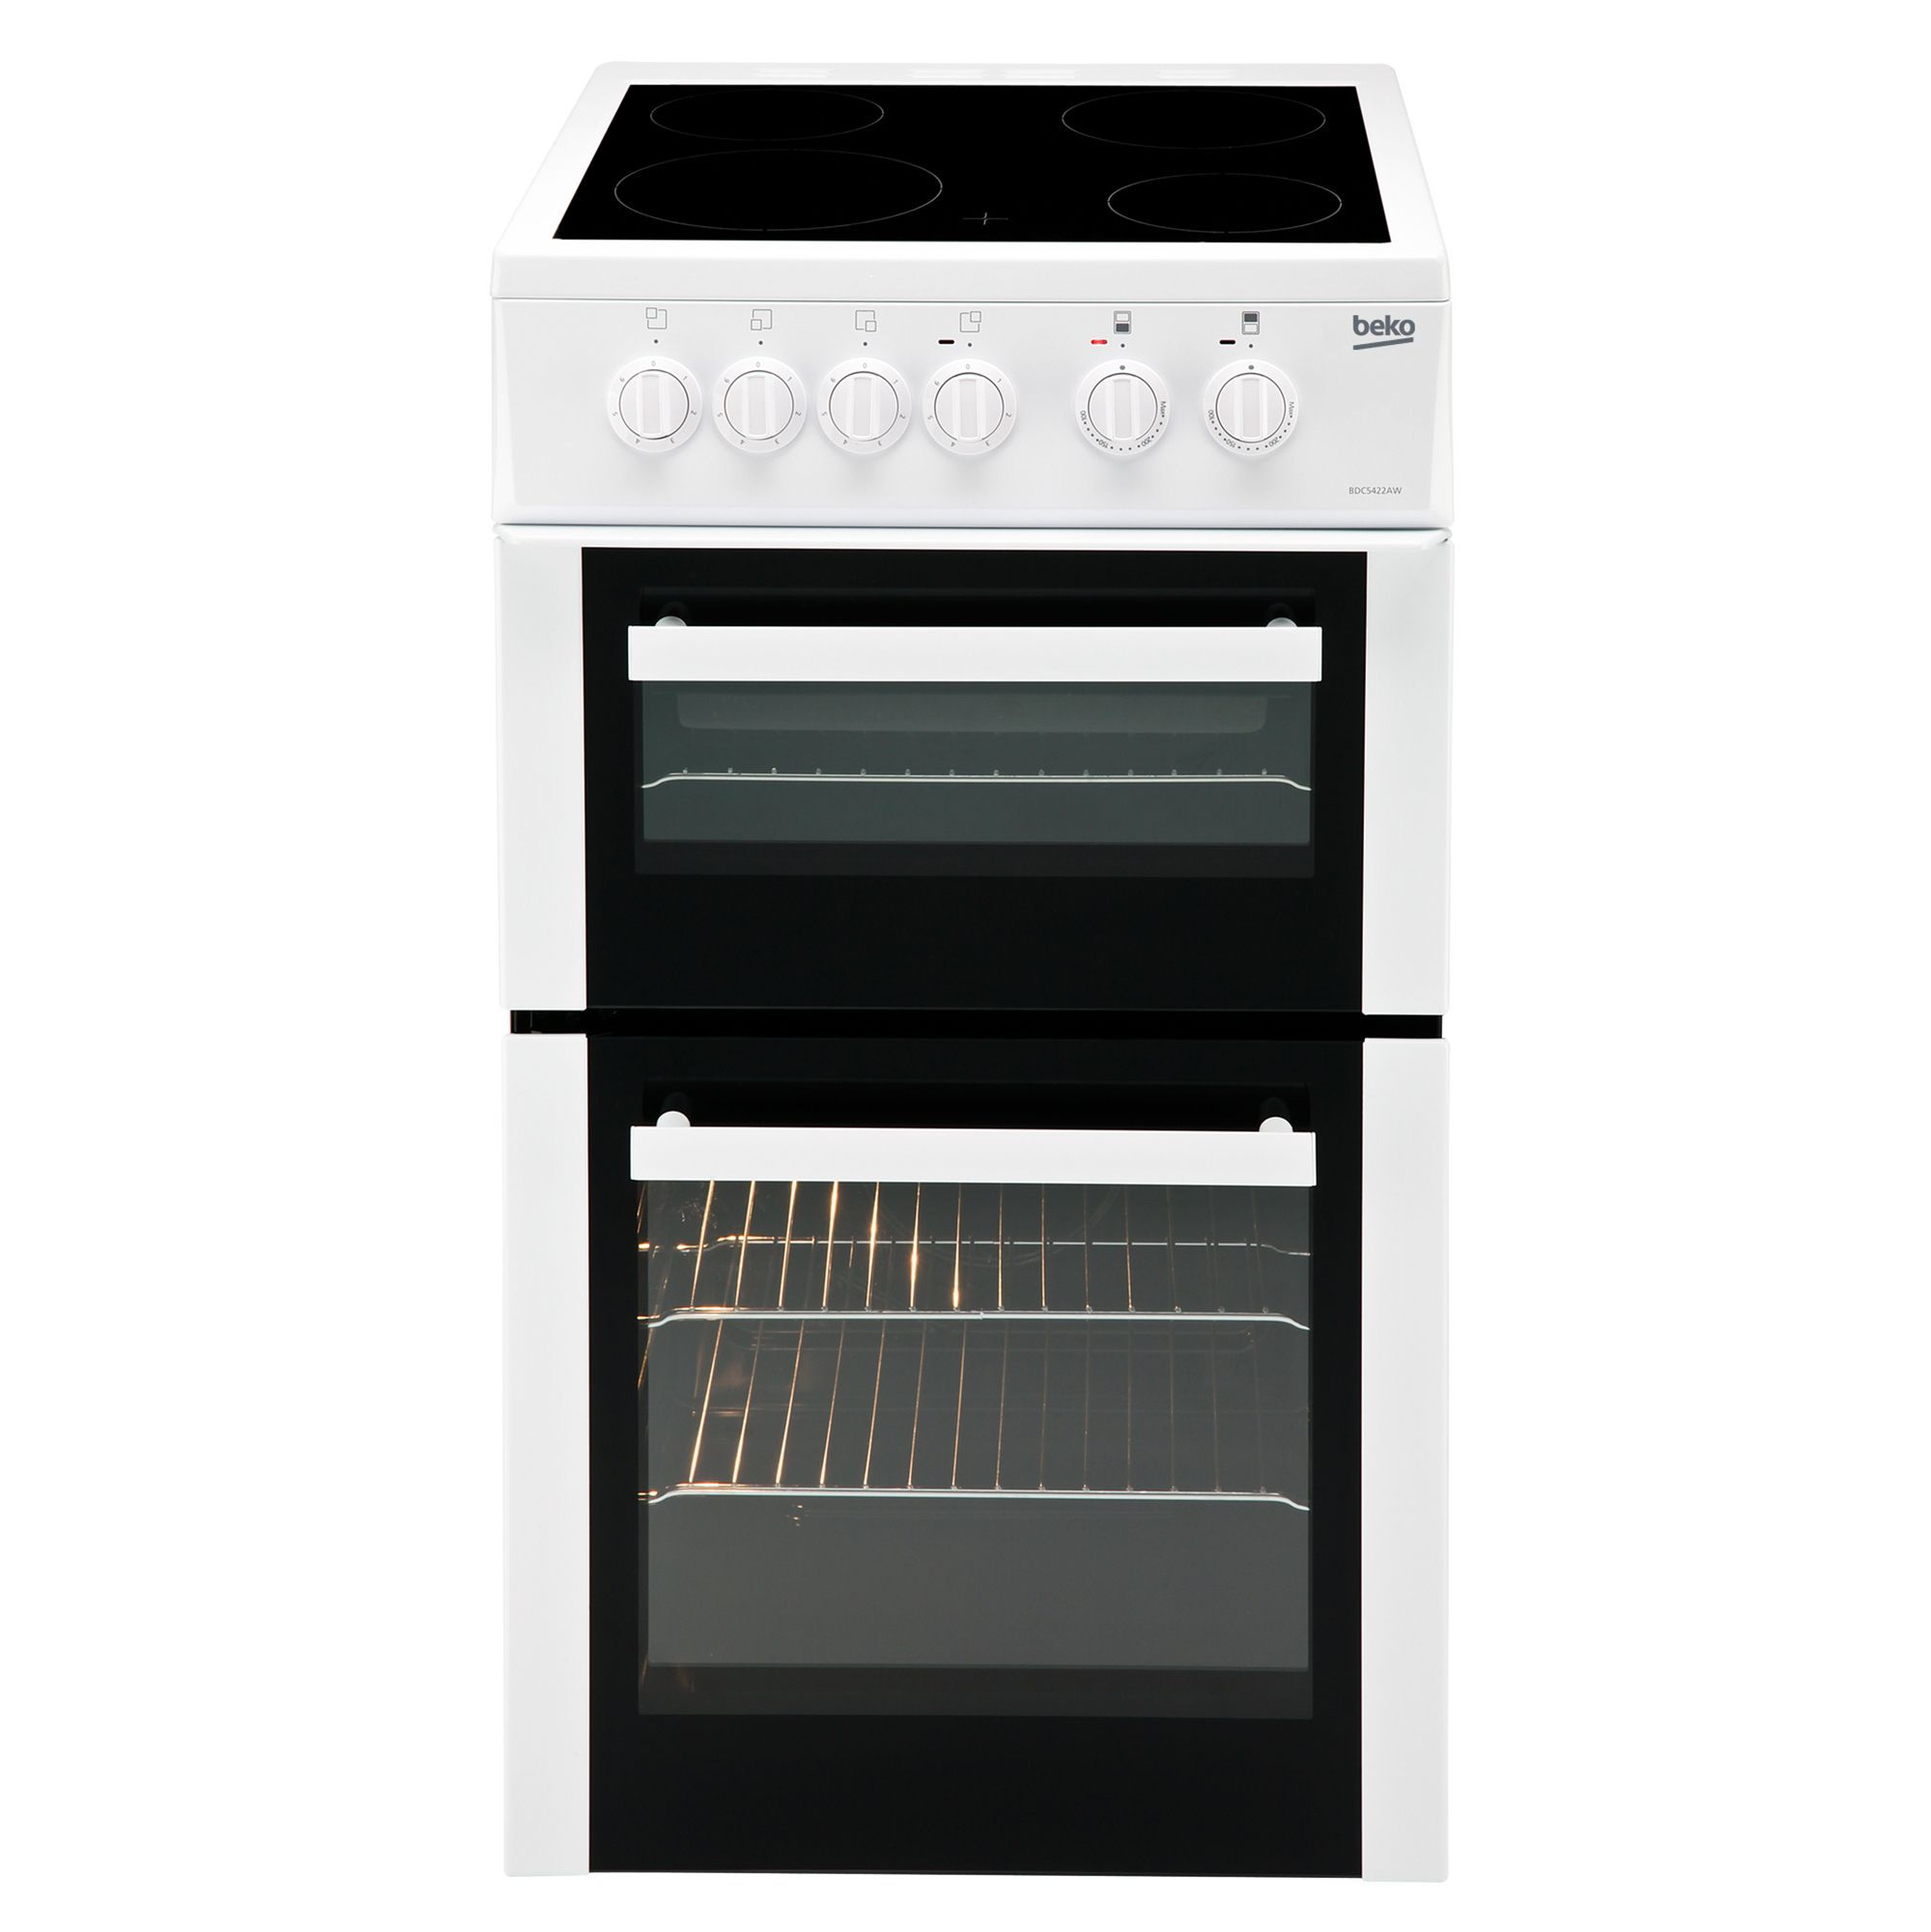 Uncategorized Beko Kitchen Appliances beko freestanding electric cooker with hob bdc5422aw departments diy at bq